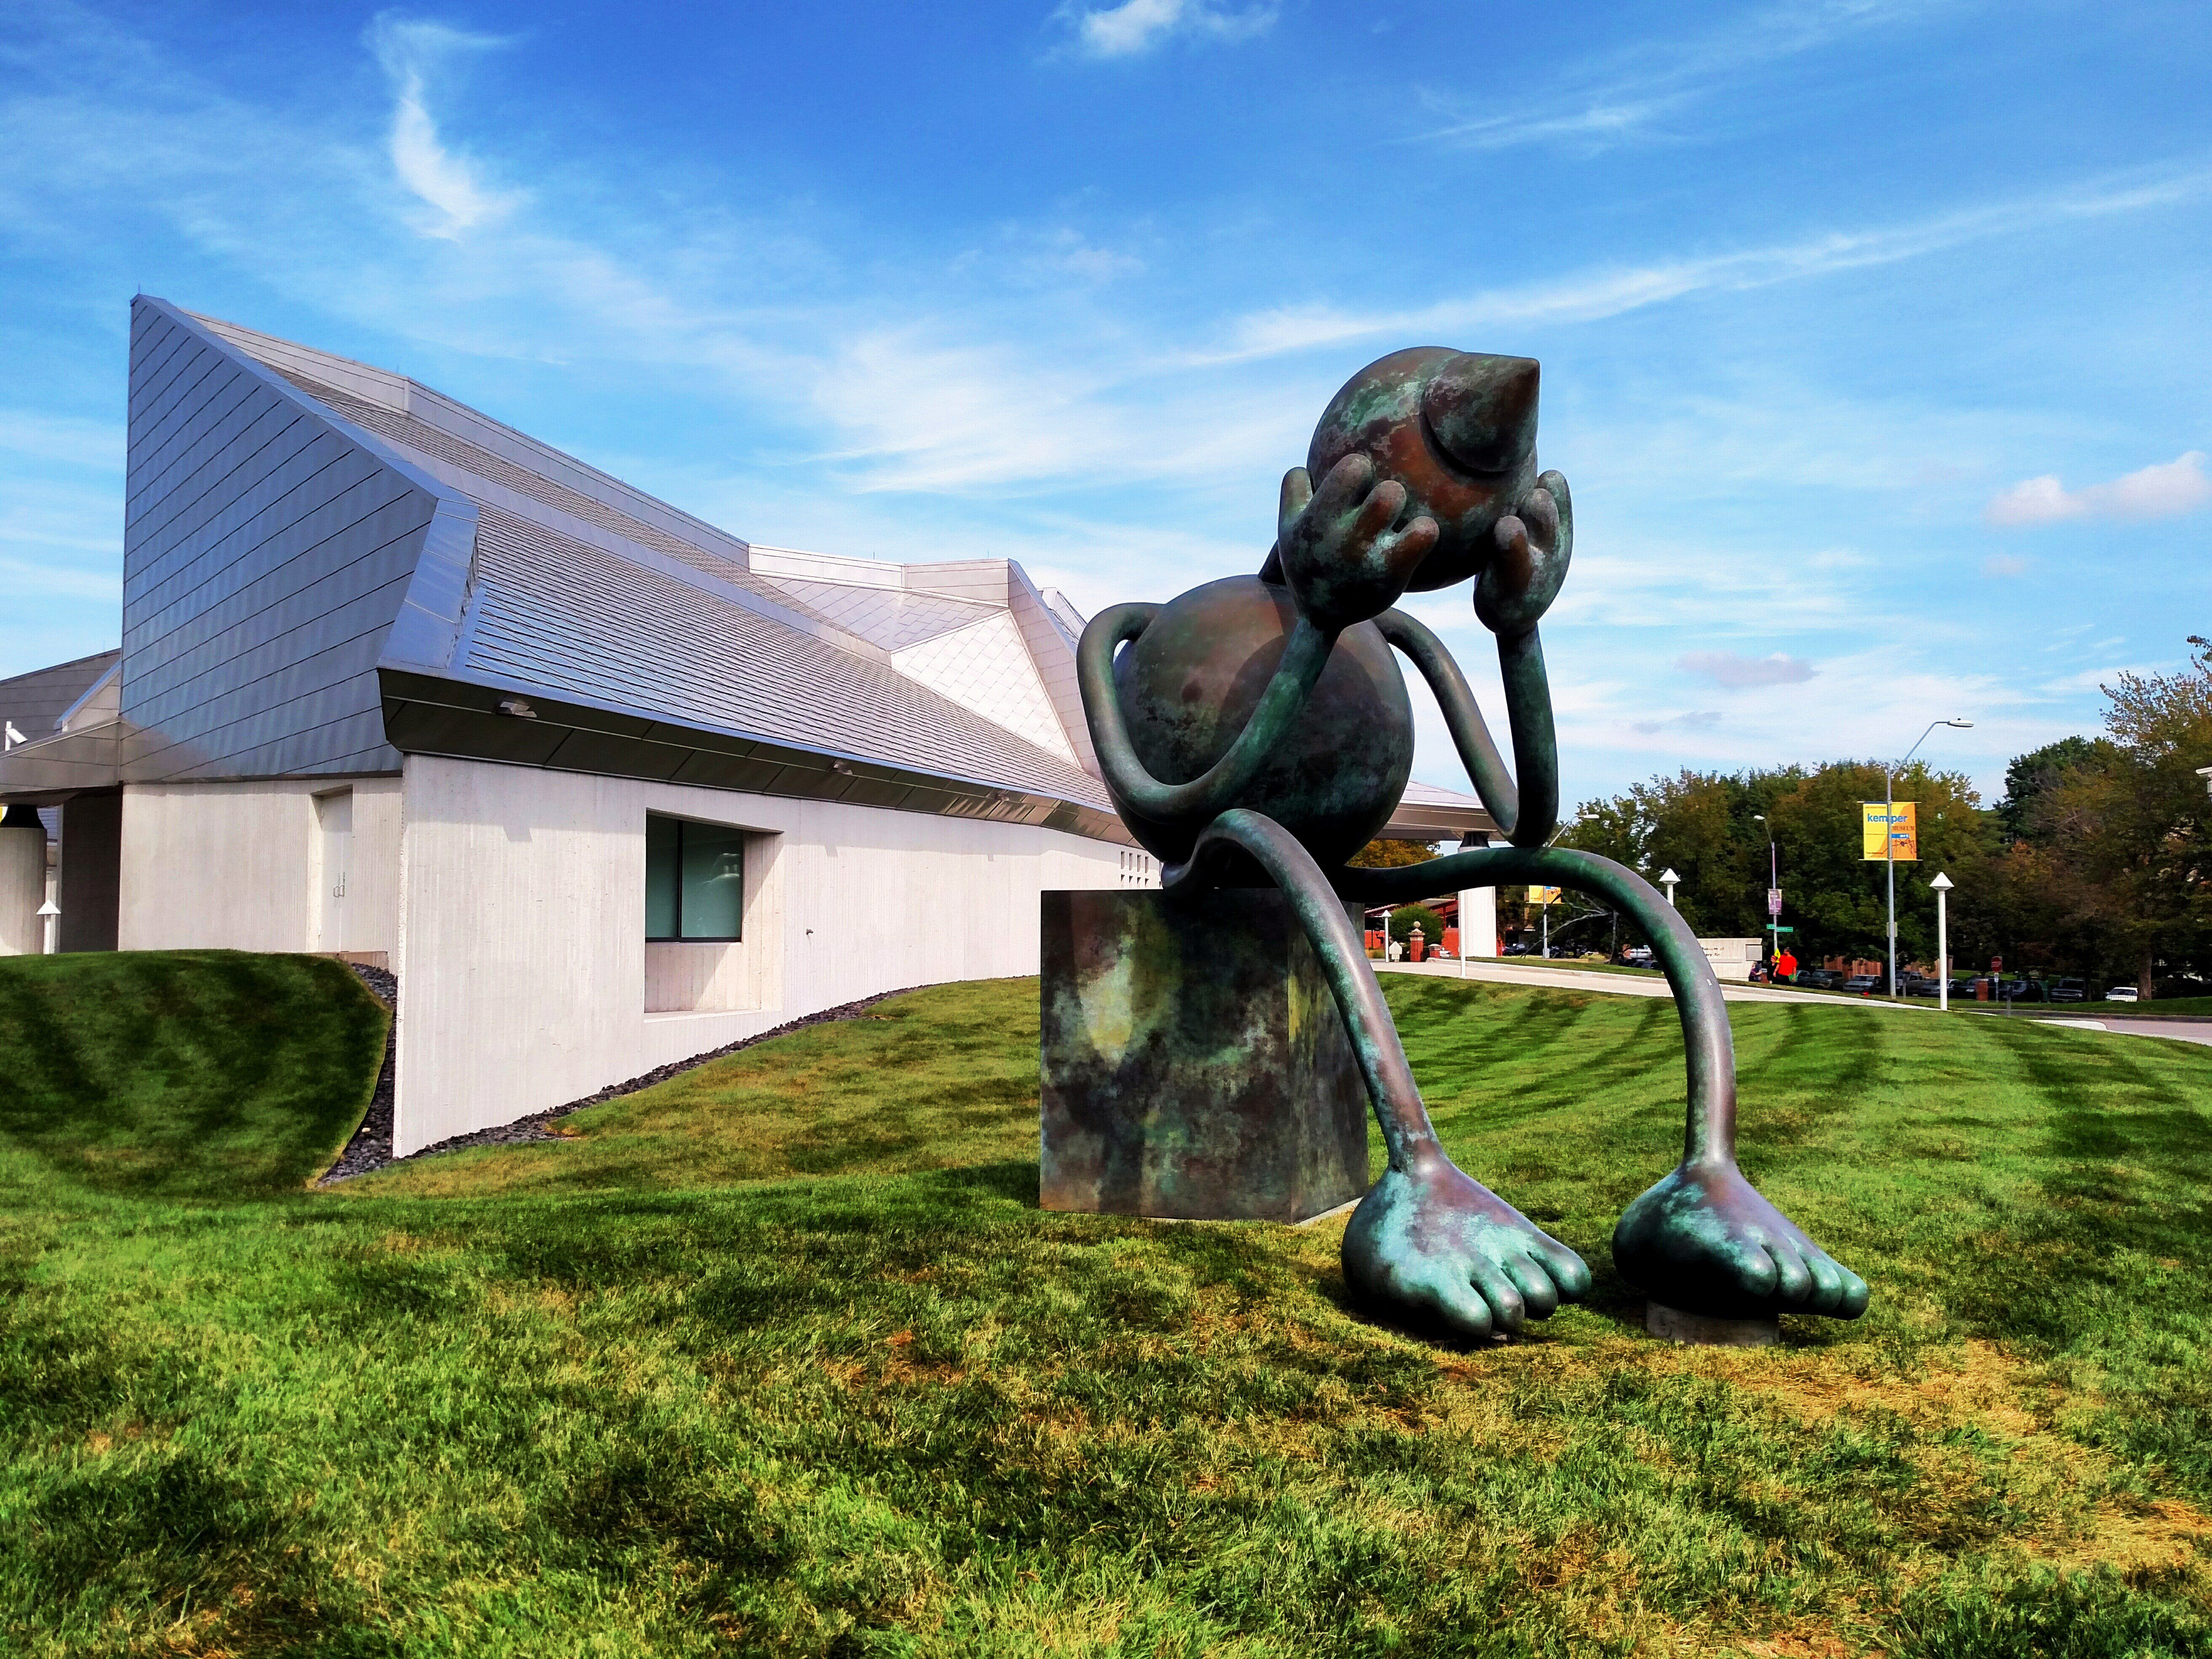 Crying Giant by Tom Otterness, at the Kemper Museum of Contemporary Art in Kansas City, Missouri